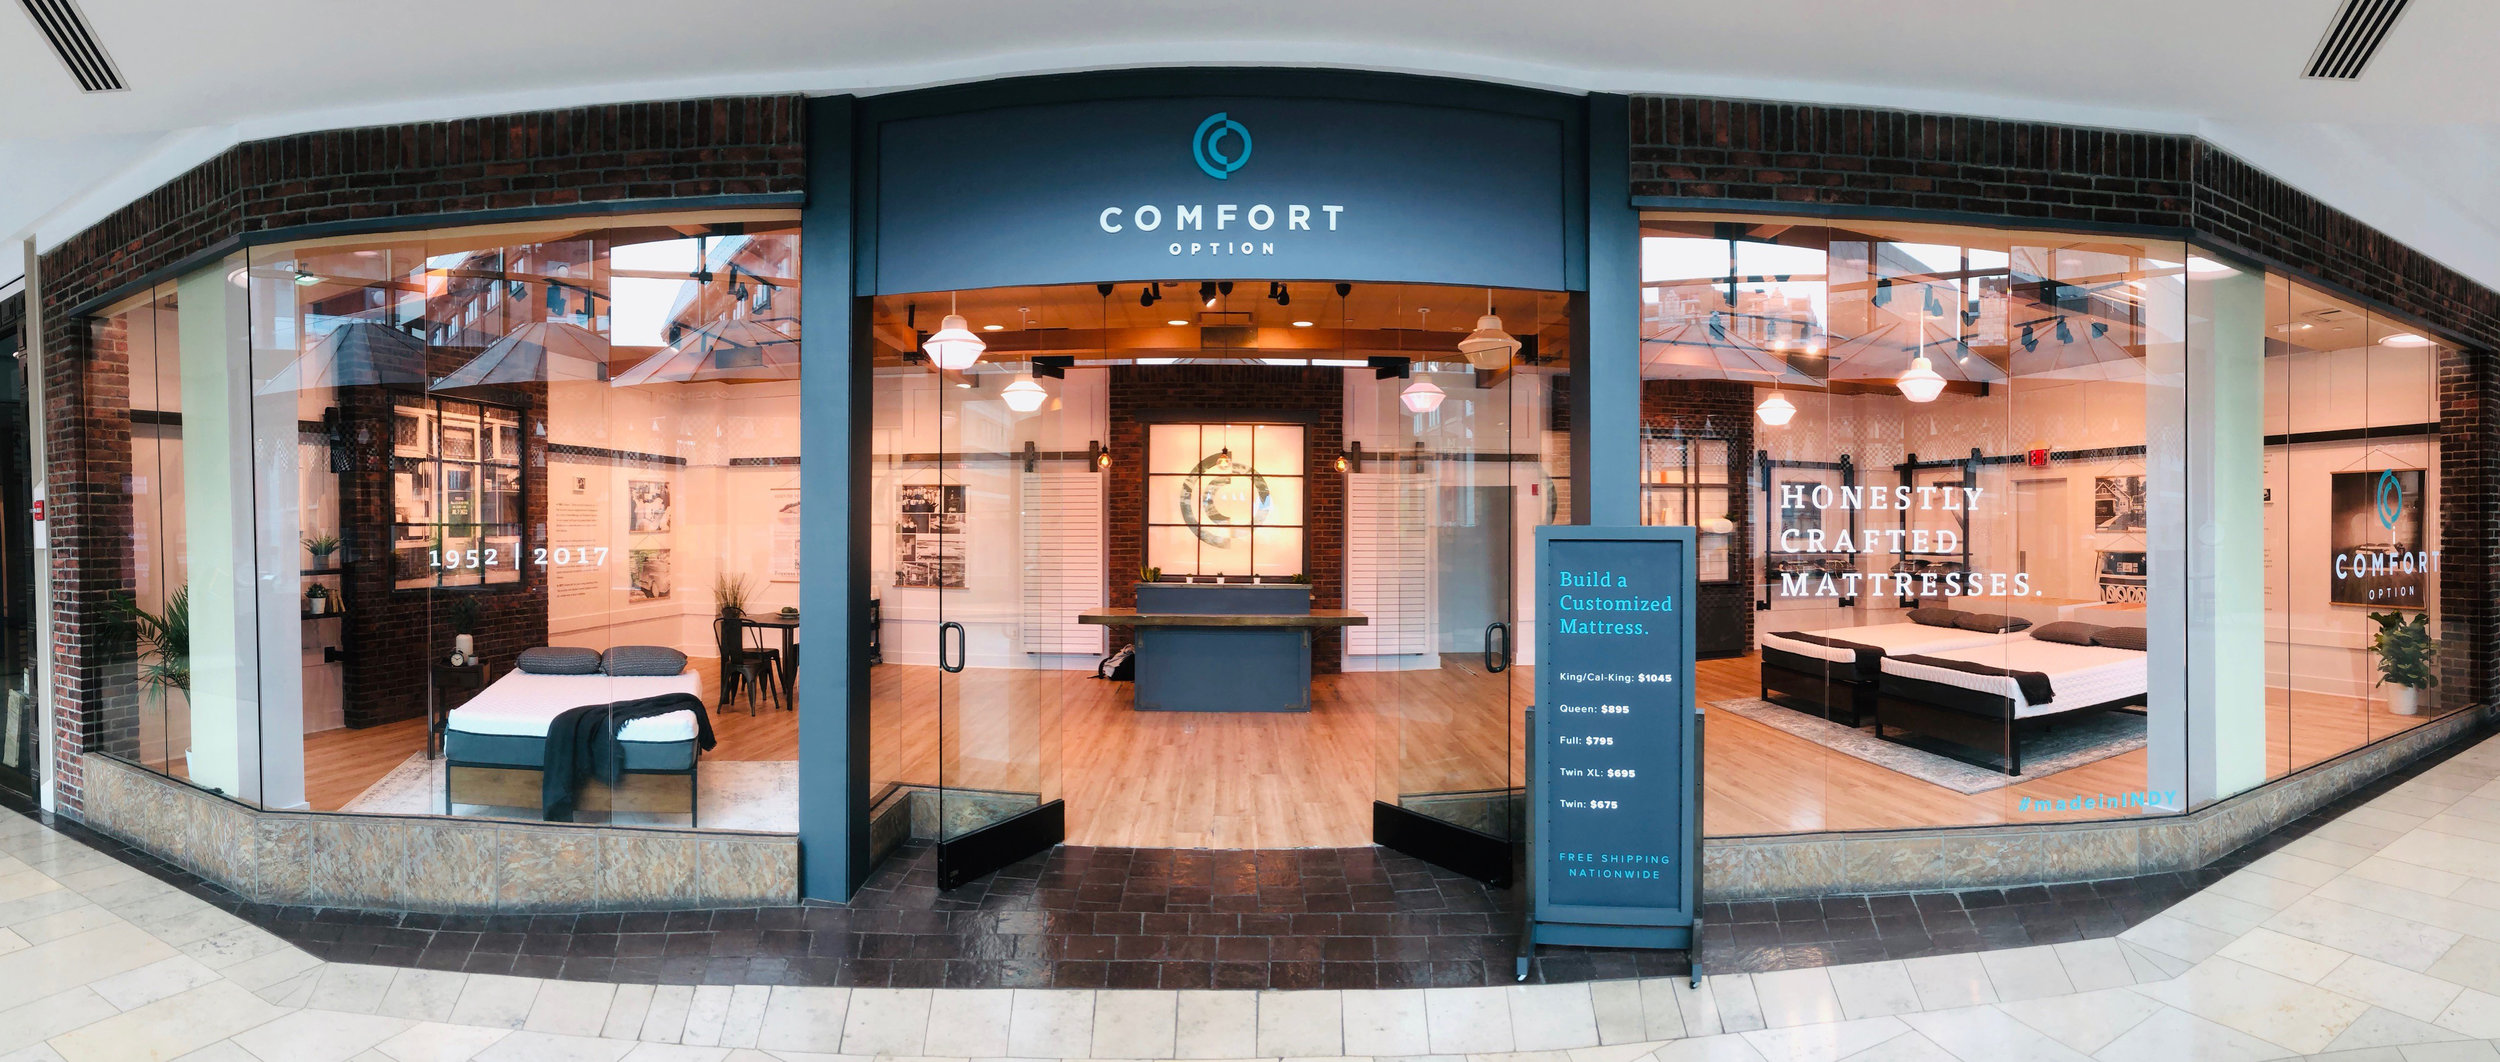 Comfort Option downtown Indianapolis mattress store in Circle Centre Mall.